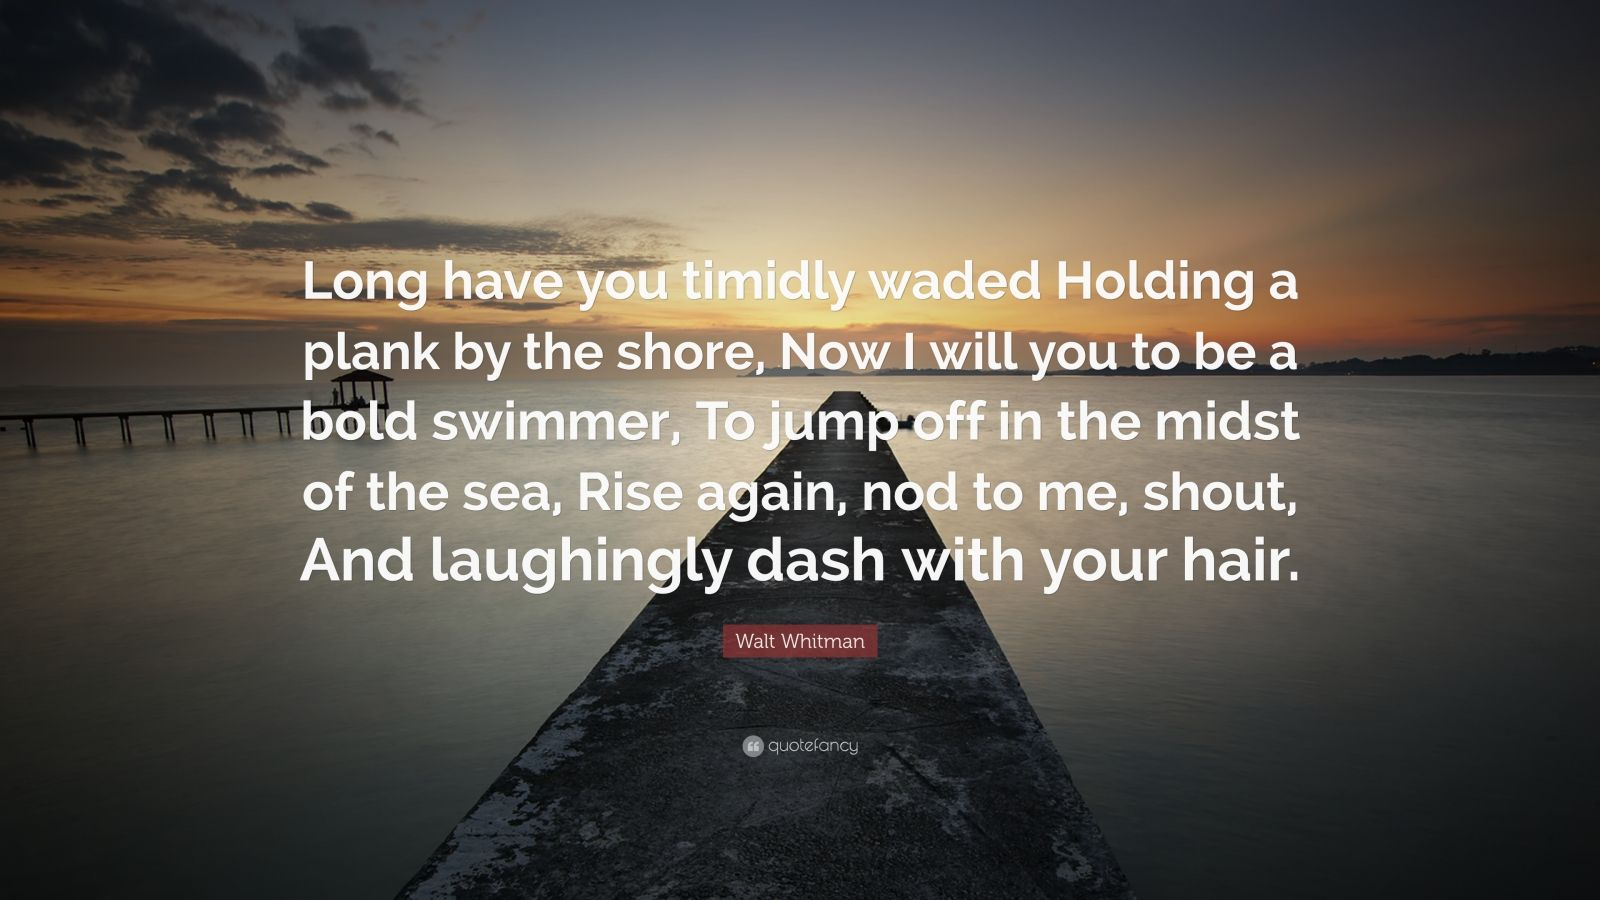 """Walt Whitman Quote: """"Long have you timidly waded Holding a plank by the shore, Now I will you to be a bold swimmer, To jump off in the midst of the sea, Rise again, nod to me, shout, And laughingly dash with your hair."""""""